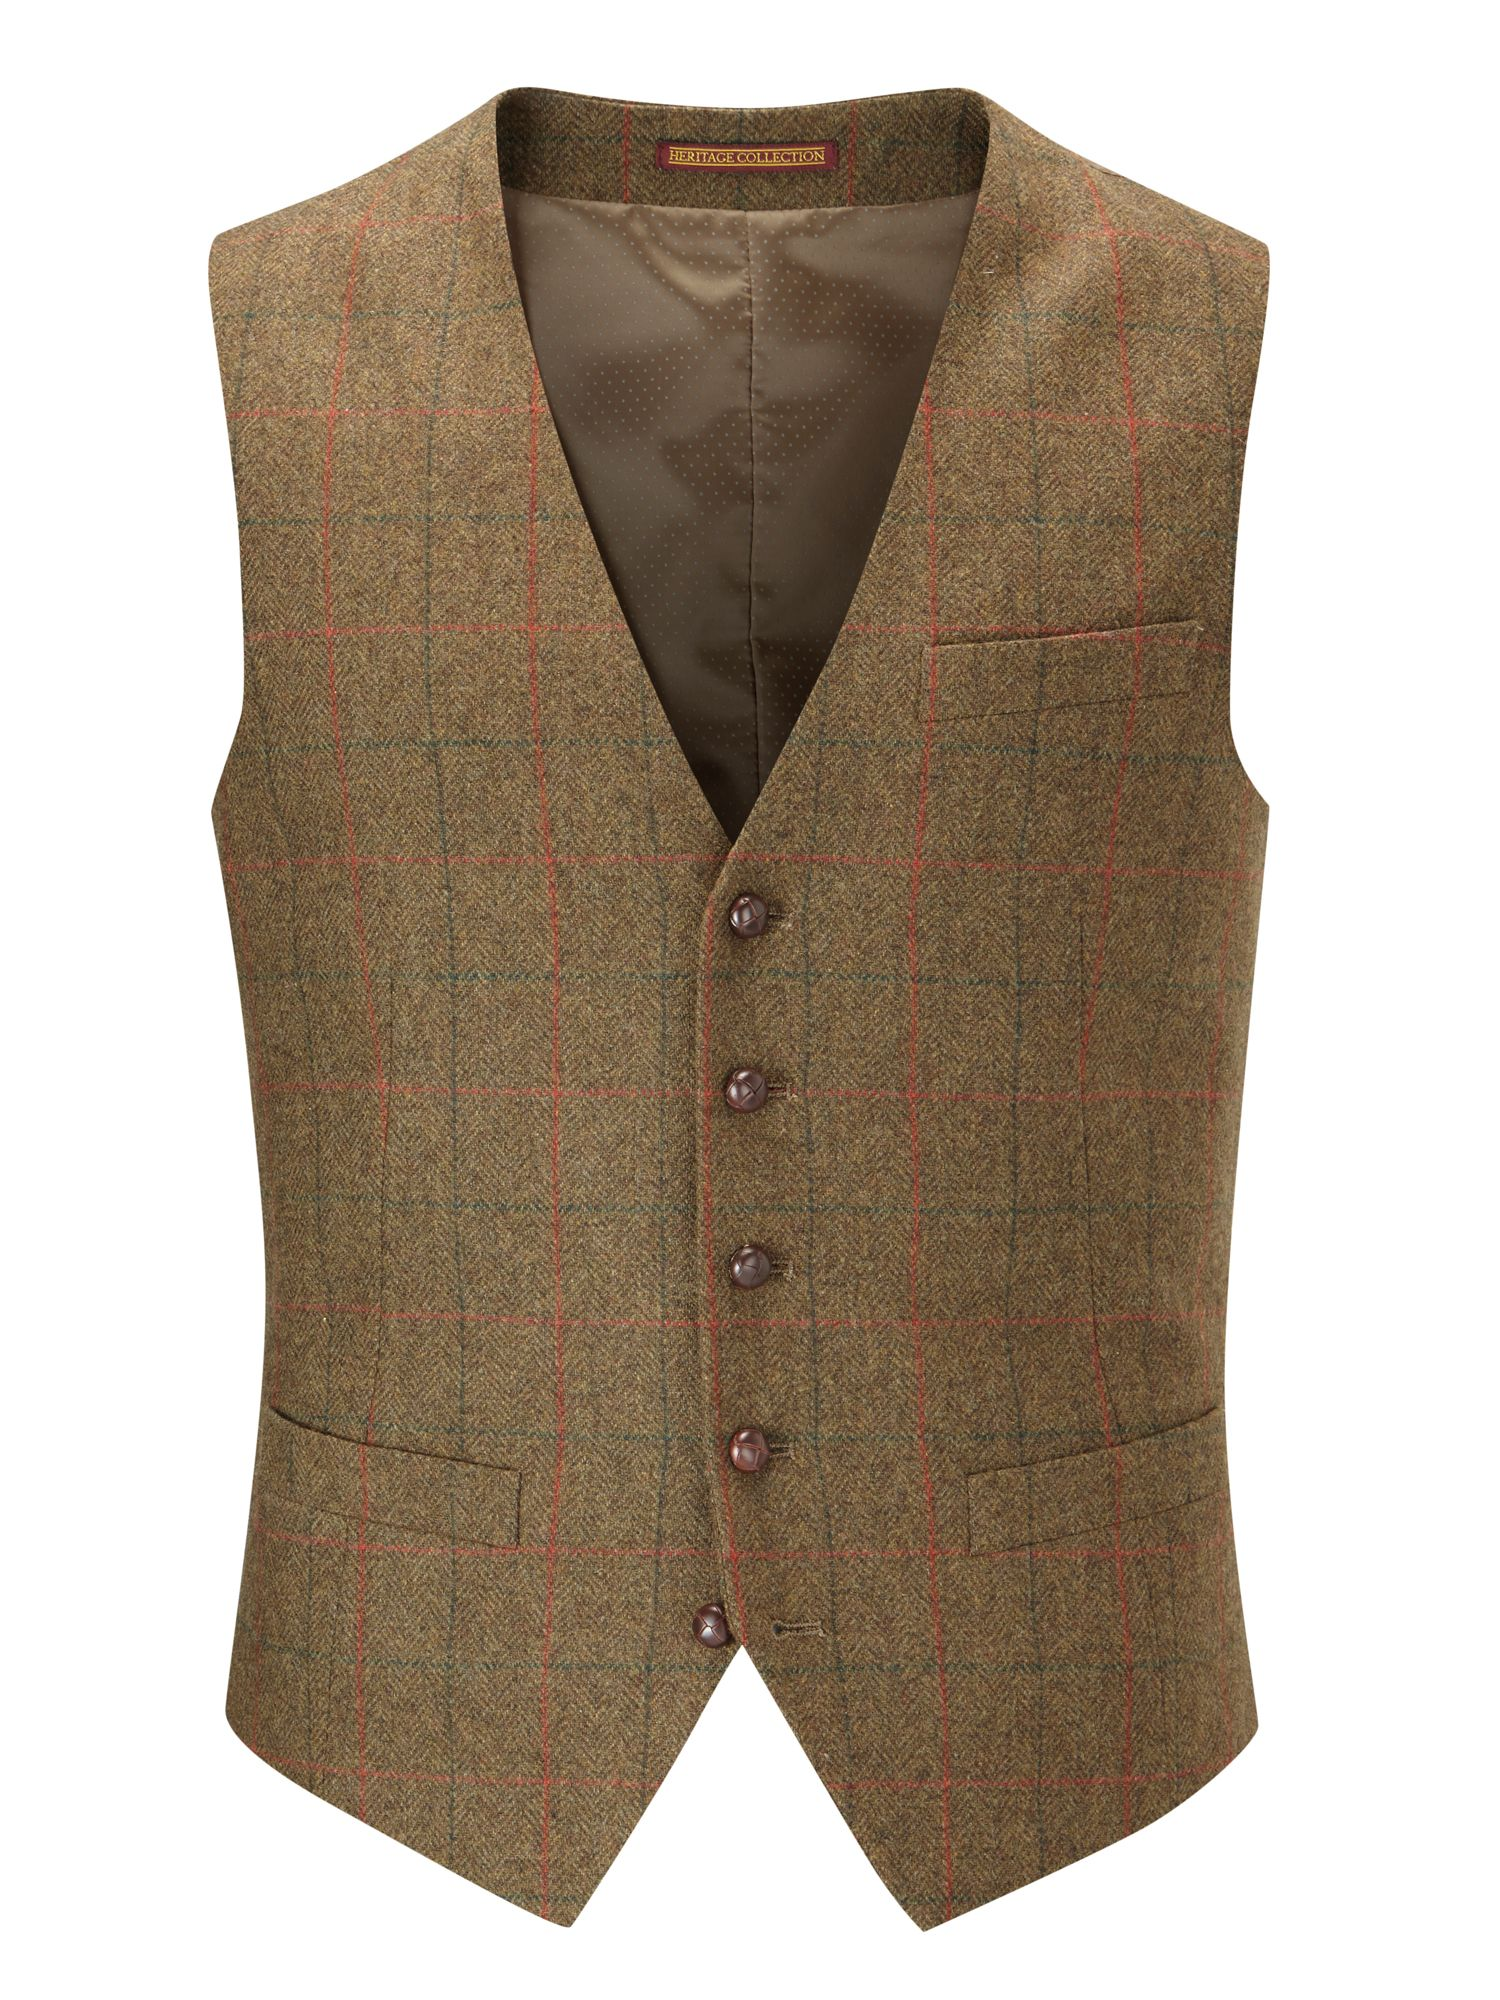 Brown Waistcoats. Our selection of brown waistcoats will have you covered all year round. From summery beige linen to autumnal earth tweed, a brown waistcoat will add a classic touch to your outfit.